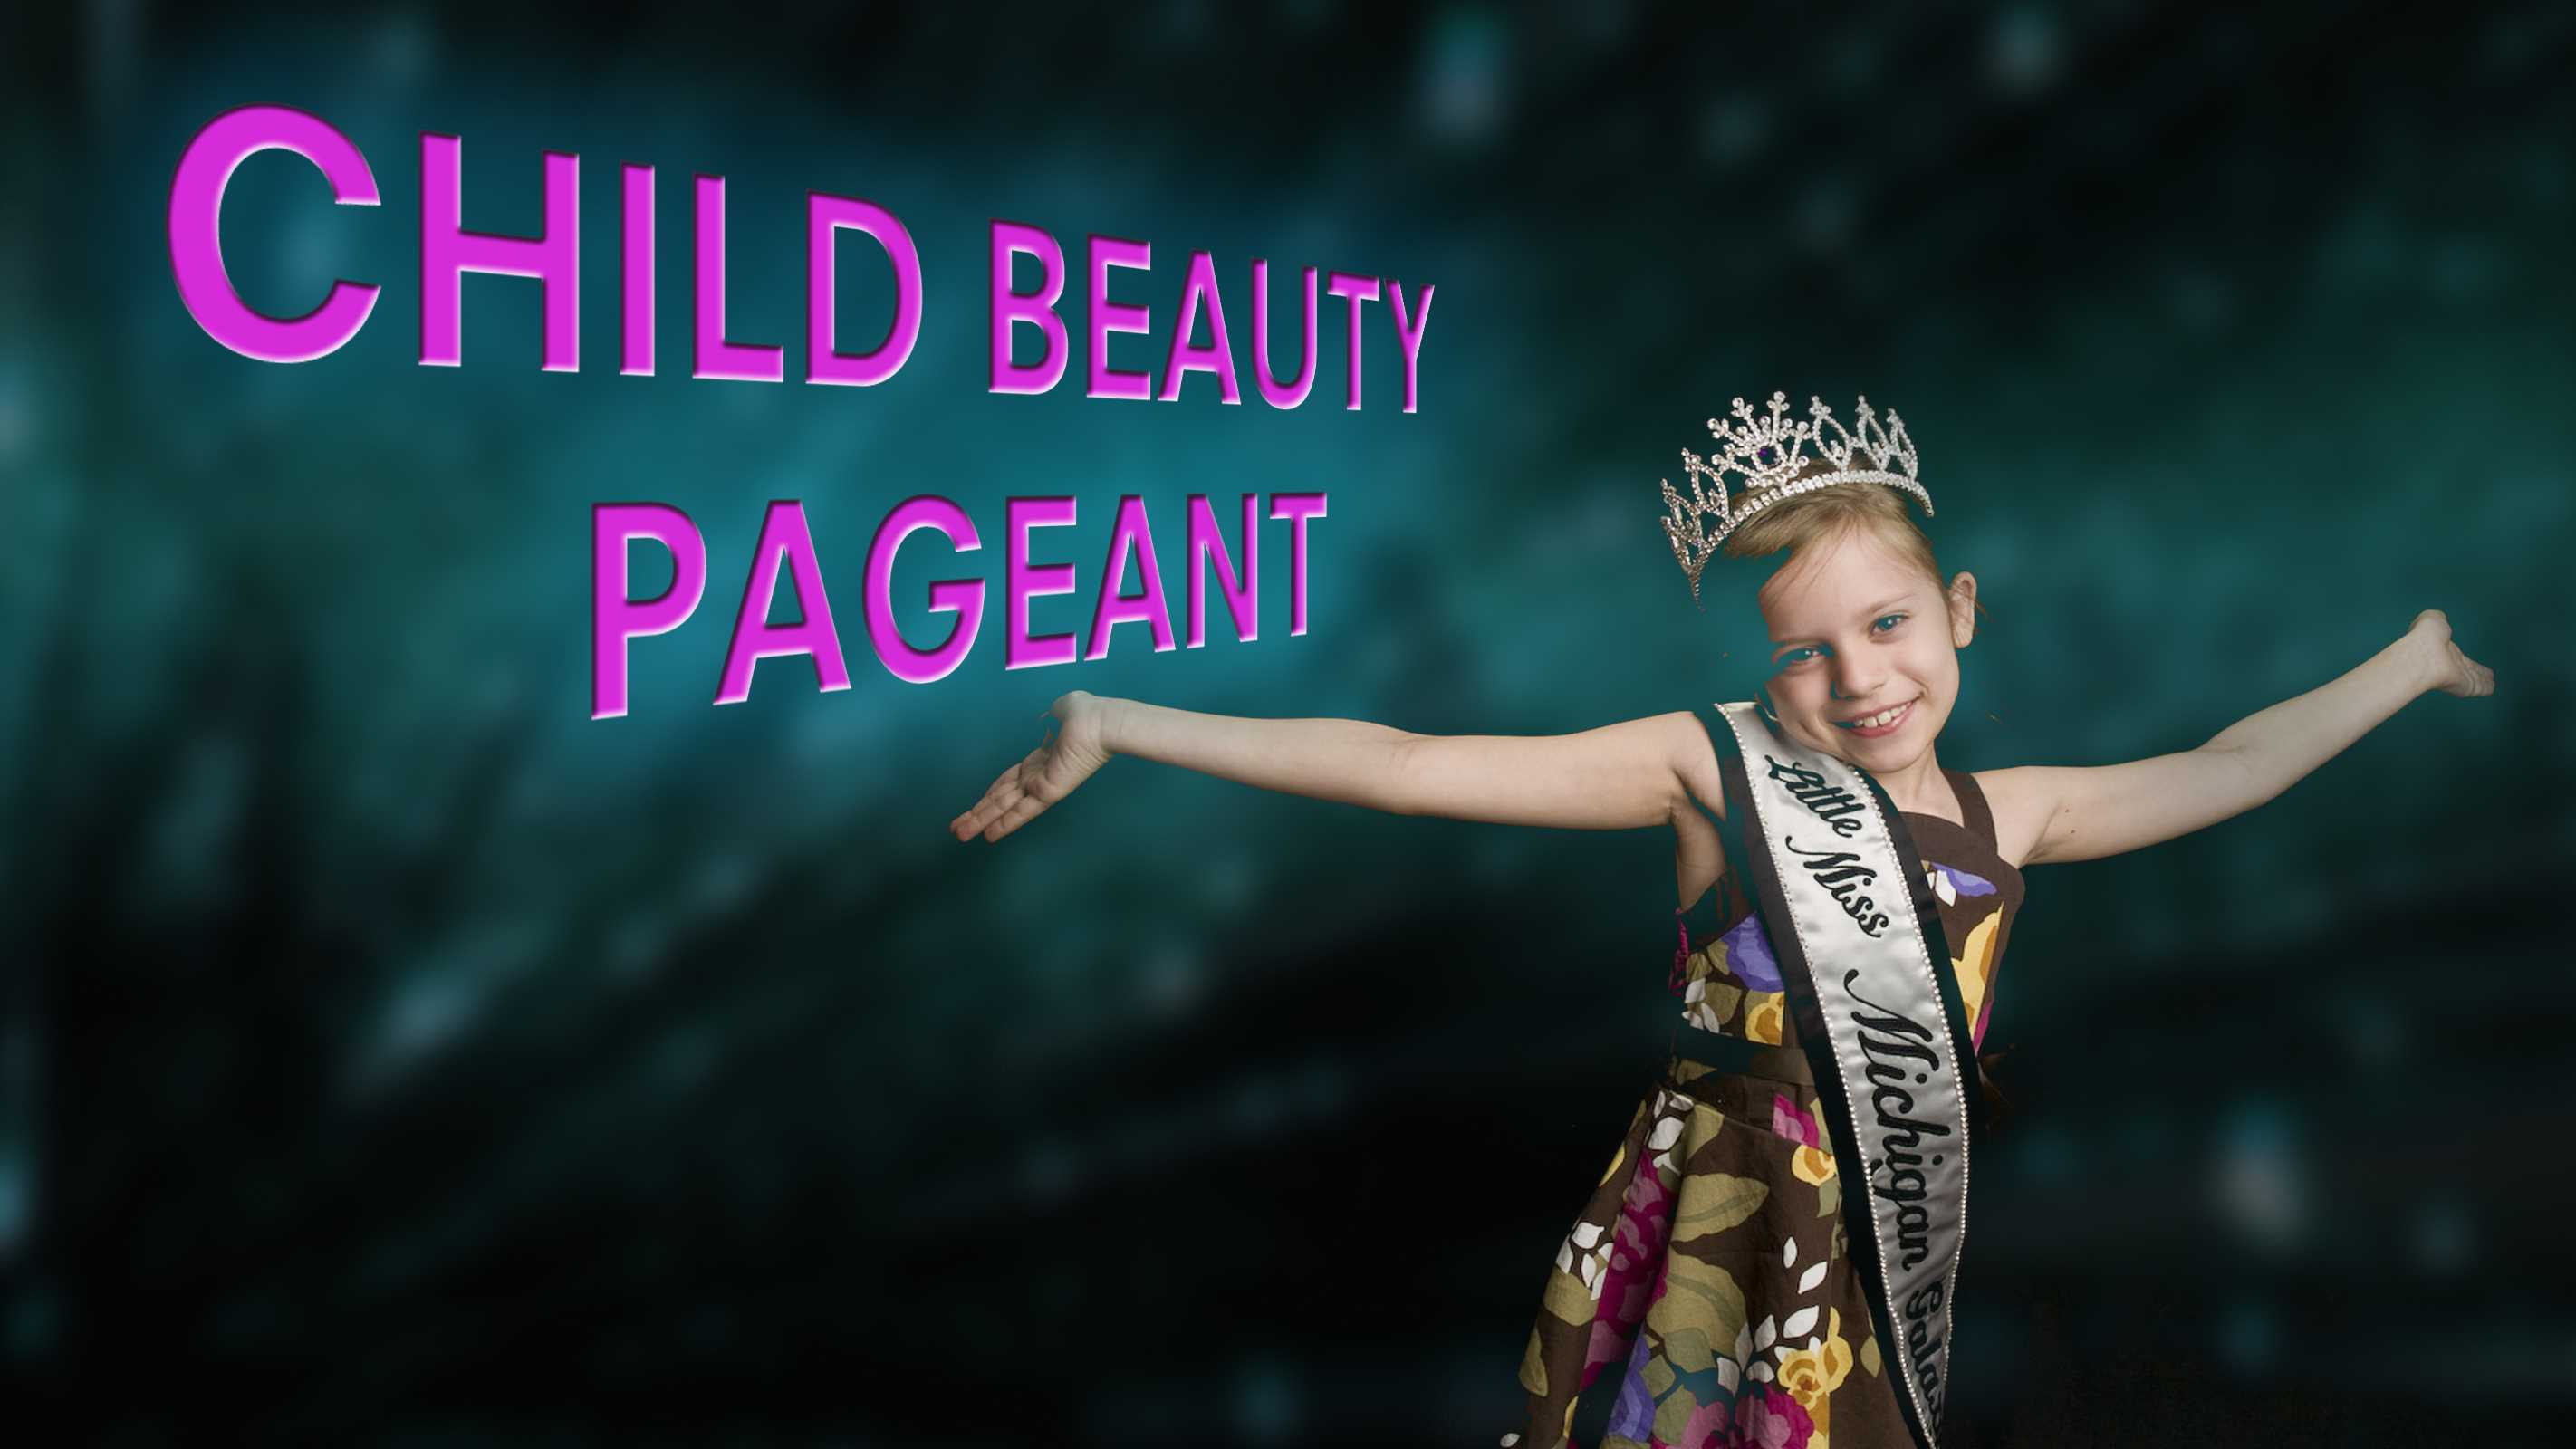 exploitation of children in beauty pagents It is the sexual exploitation that makes the offensive difference in child 'beauty' pagents boys may be pressured by dads to excell but not to be sexually appealing in the process i watched one backstage demented bitch of a mother who told her 13 year old girl, who she had dressed like a hooker, to shake what god had given her.